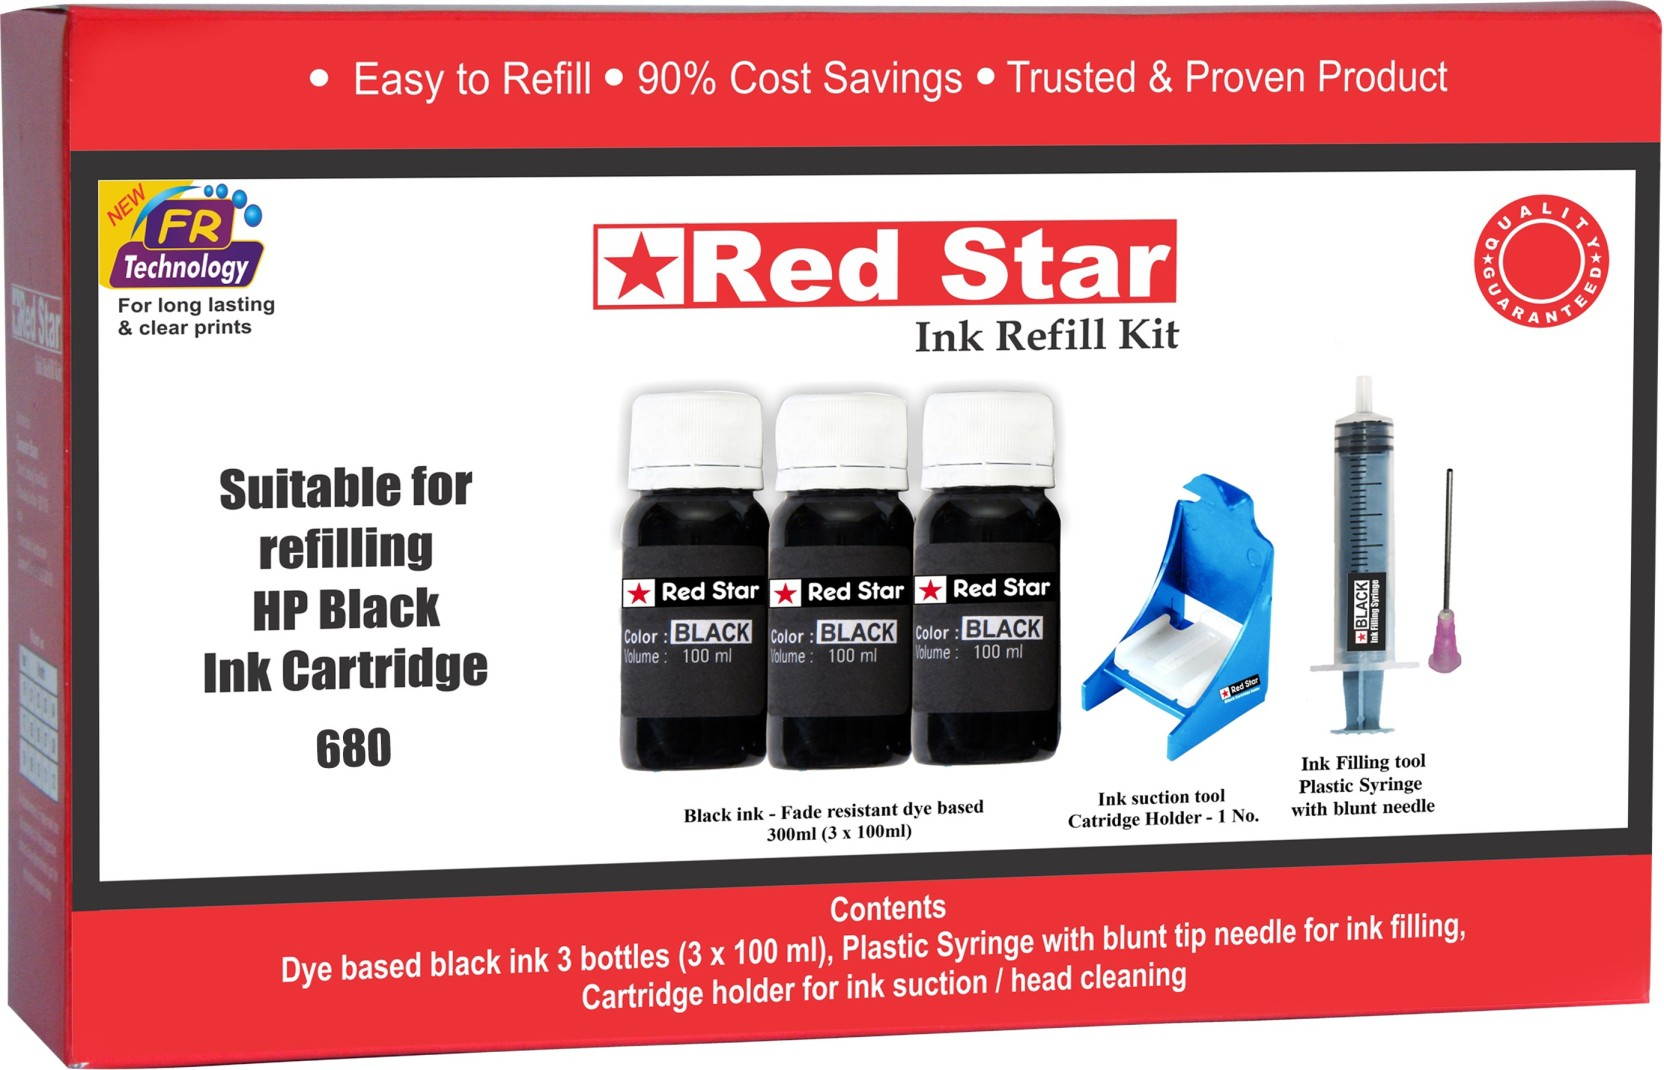 Red Star Ink Refill Kit For Hp 680 Black Cartridge Single Color Colour Add To Cart